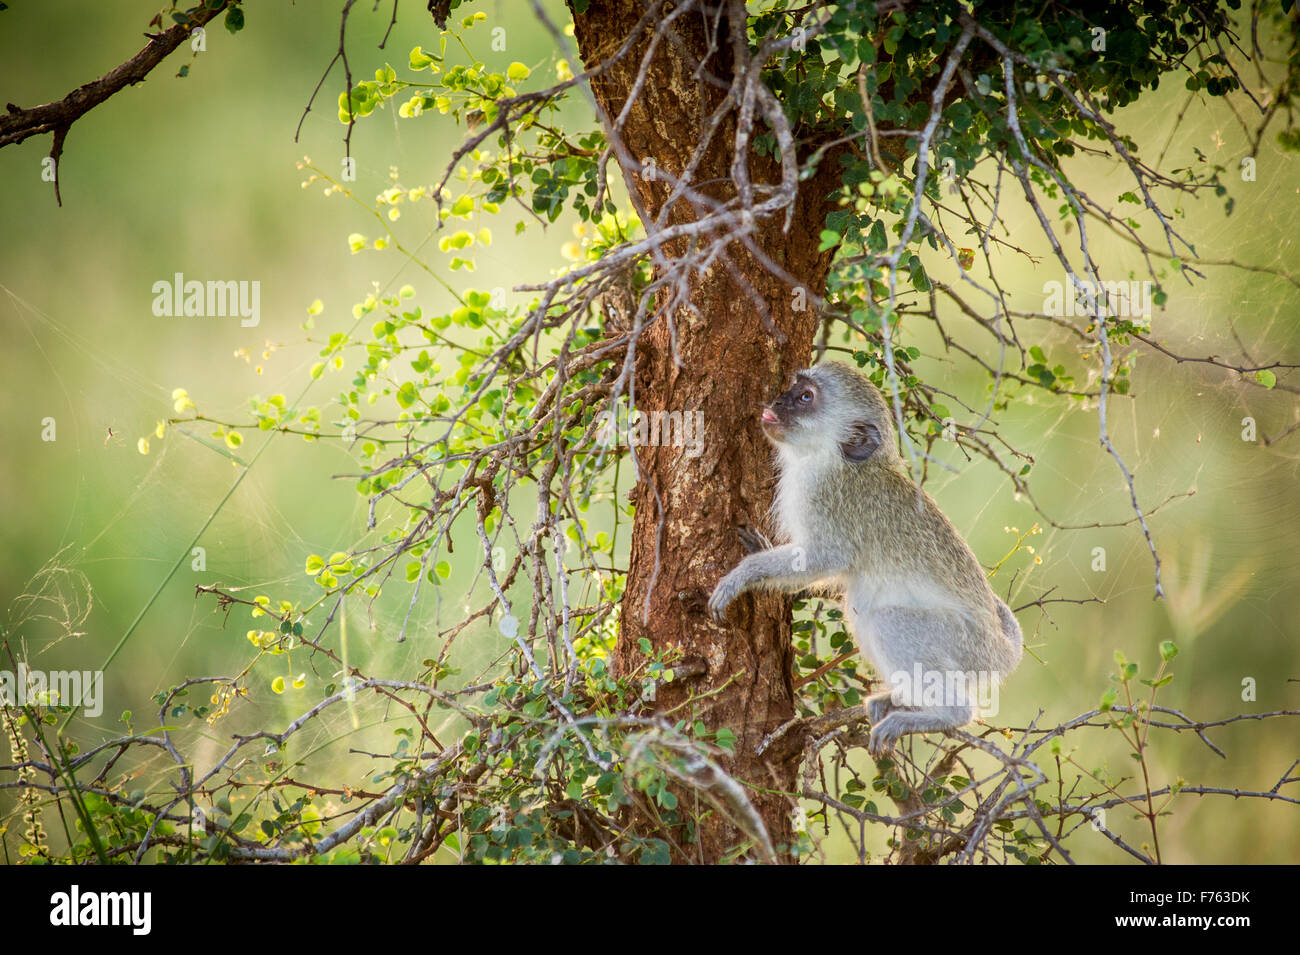 Afrique du Sud - Parc National Kruger et un singe (Chlorocebus pygerythrus) Photo Stock